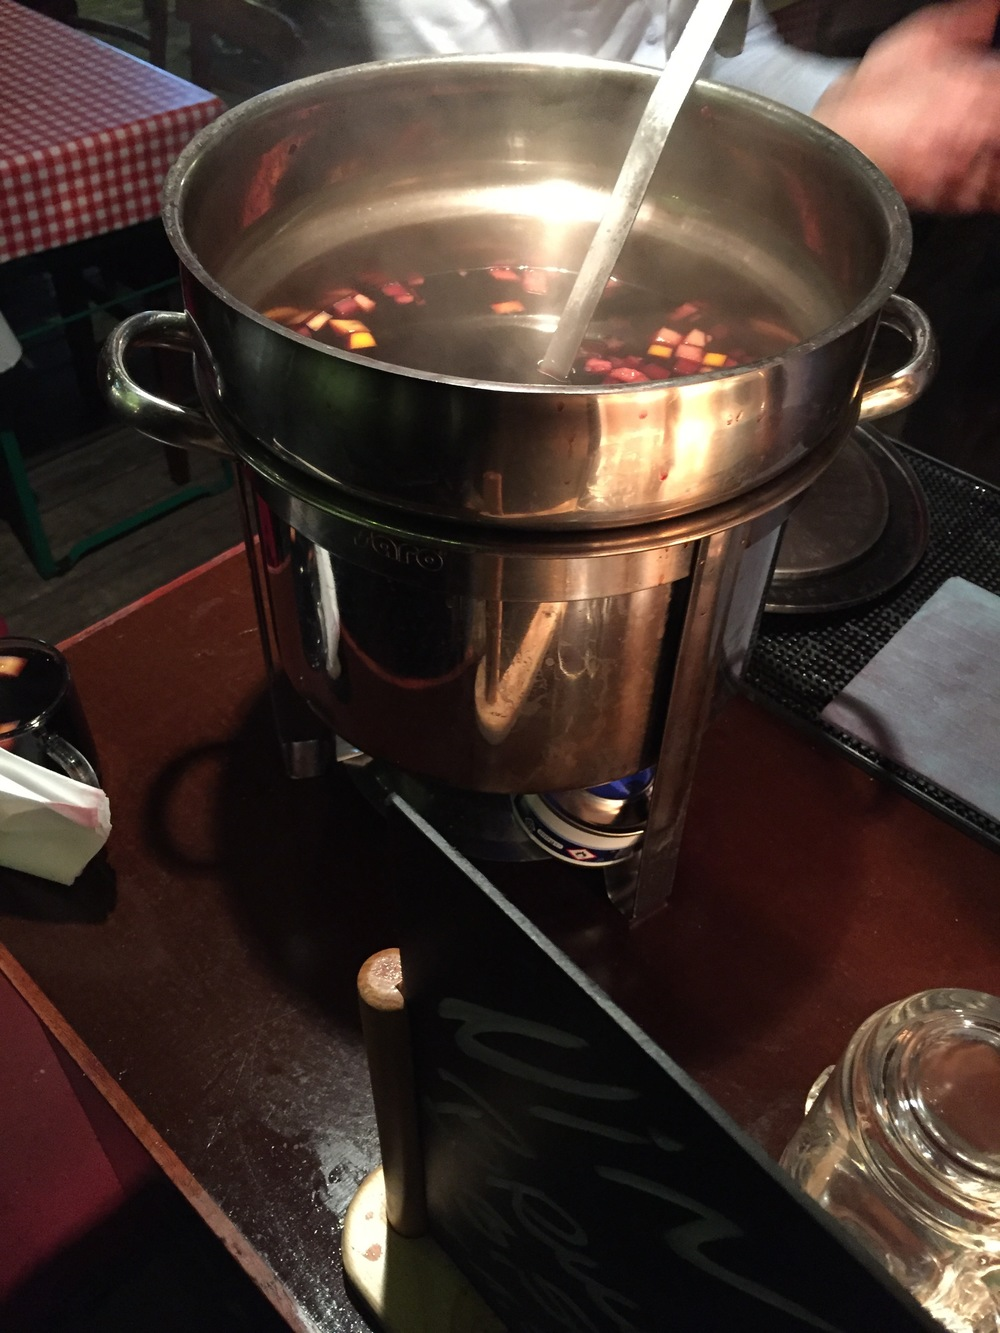 A traditional mulled wine